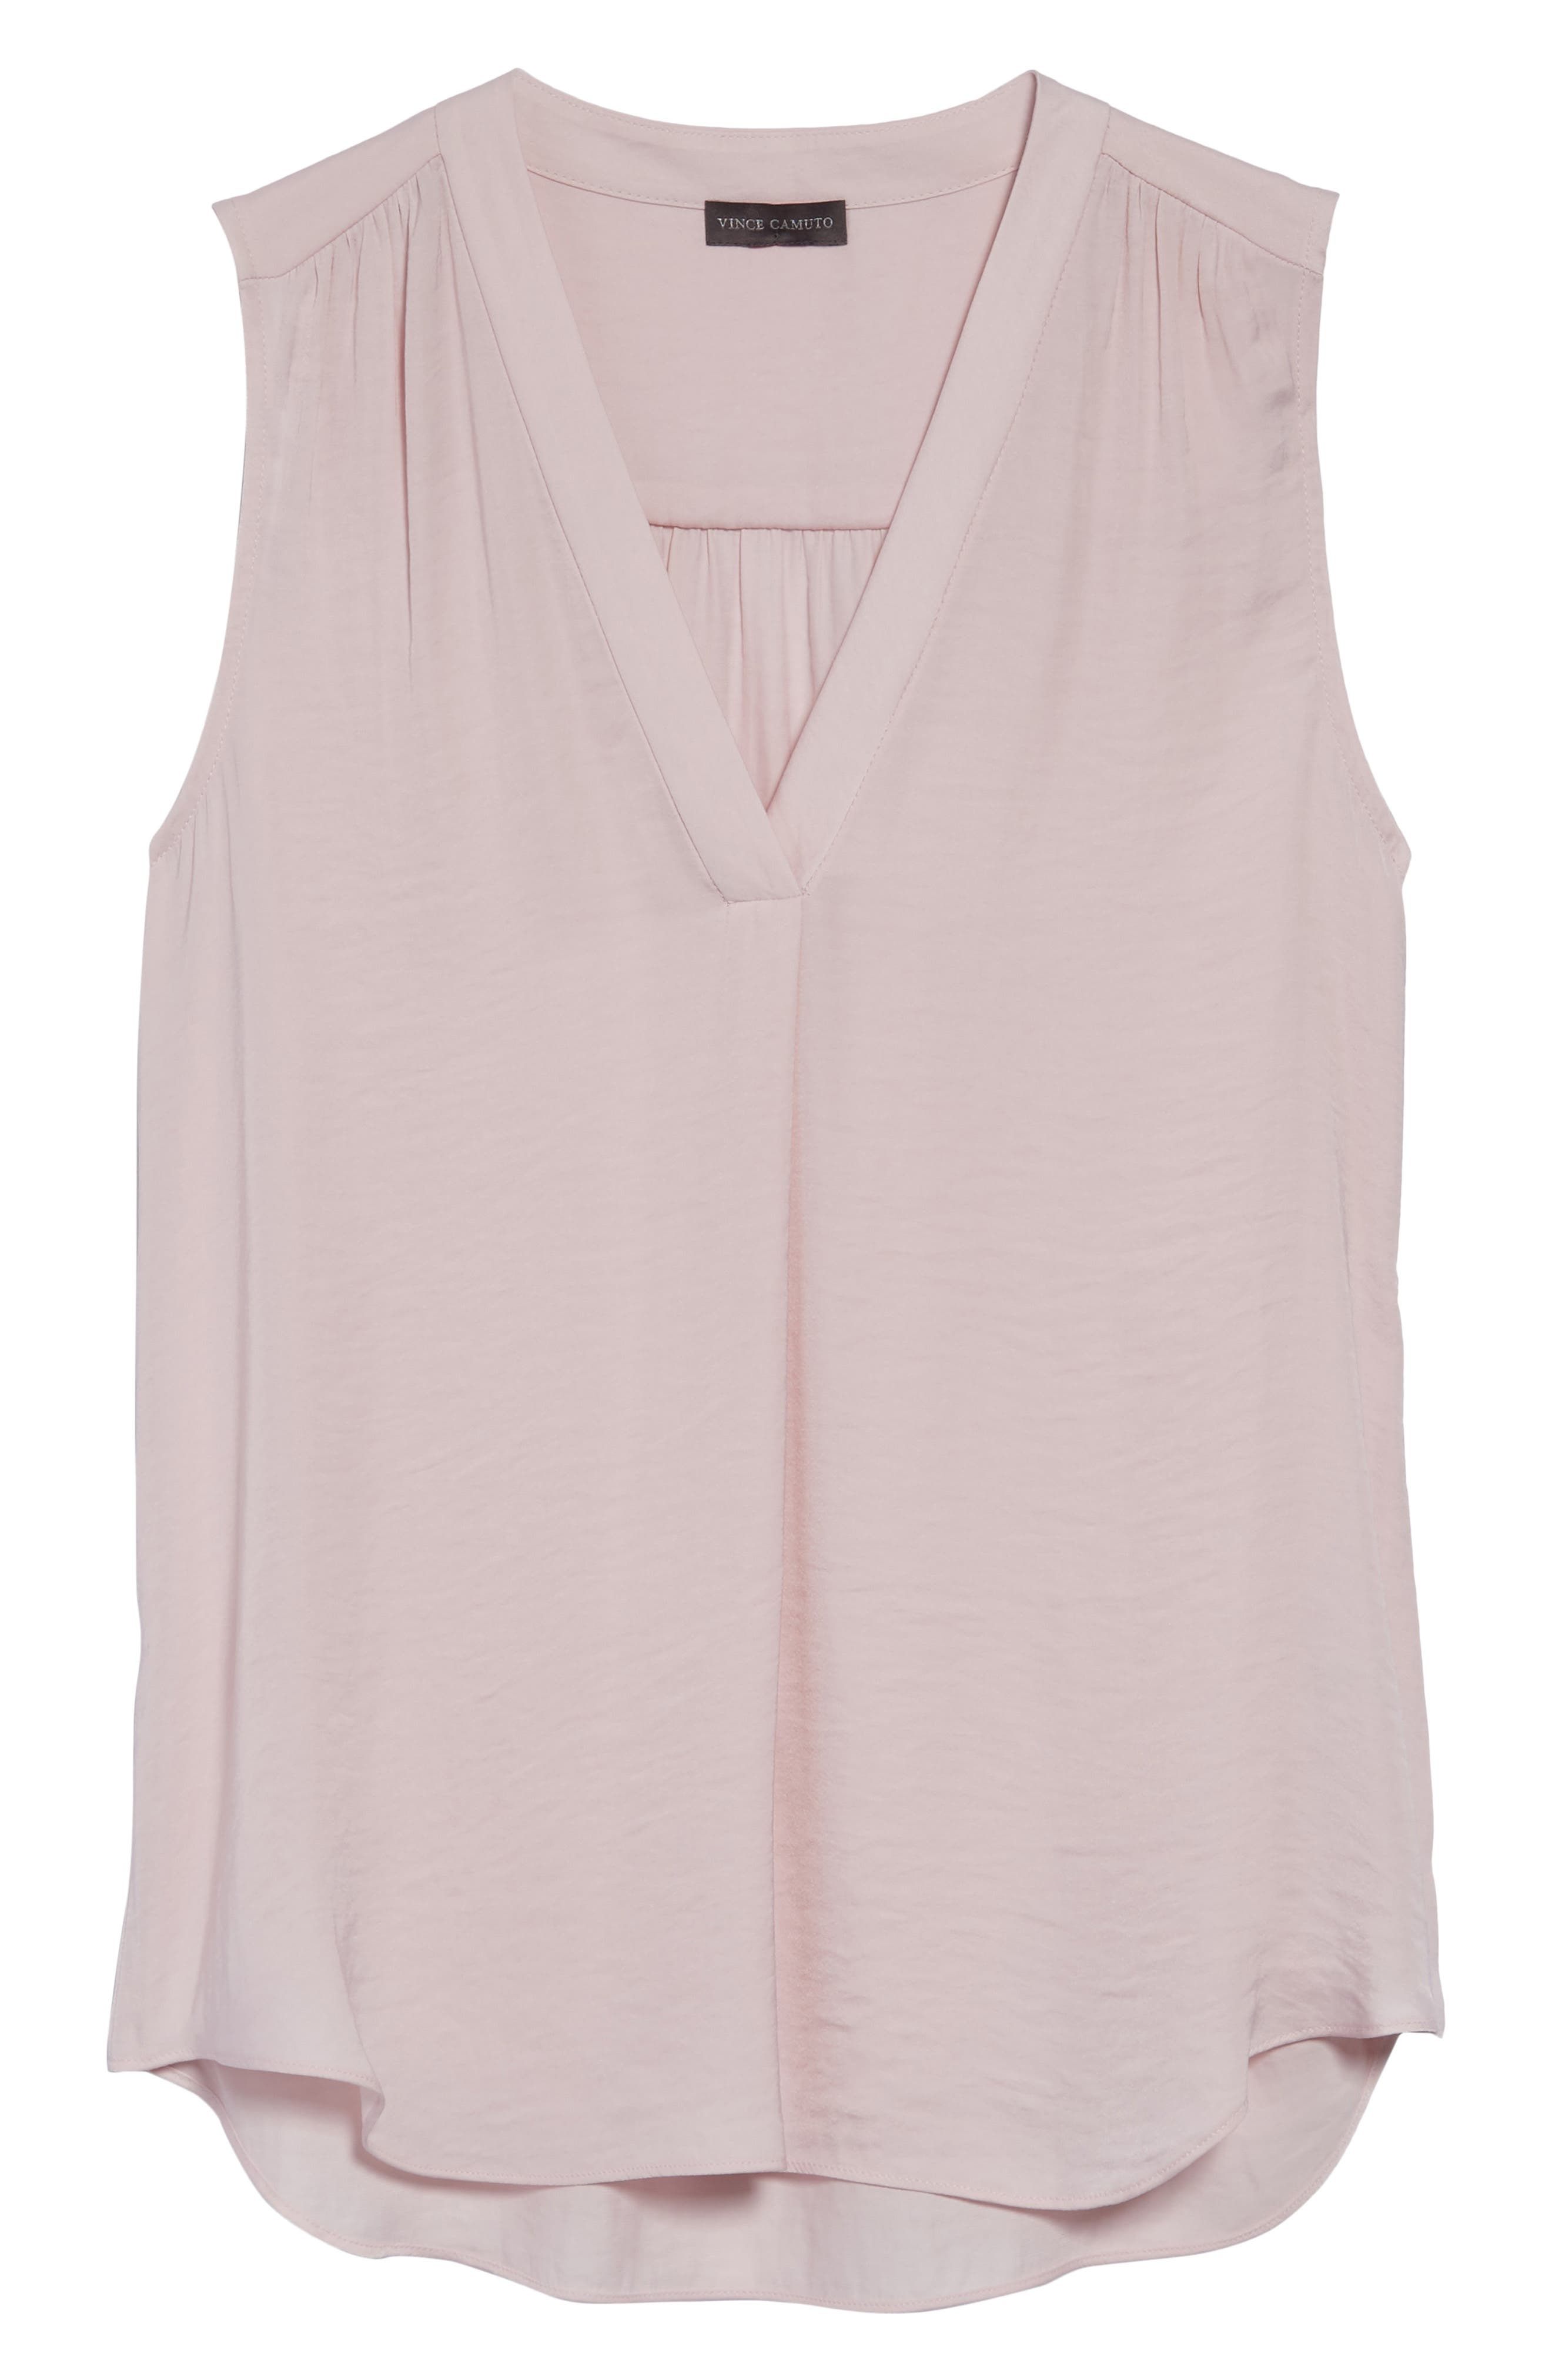 VINCE CAMUTO, Rumpled Satin Blouse, Alternate thumbnail 3, color, PINK BLISS